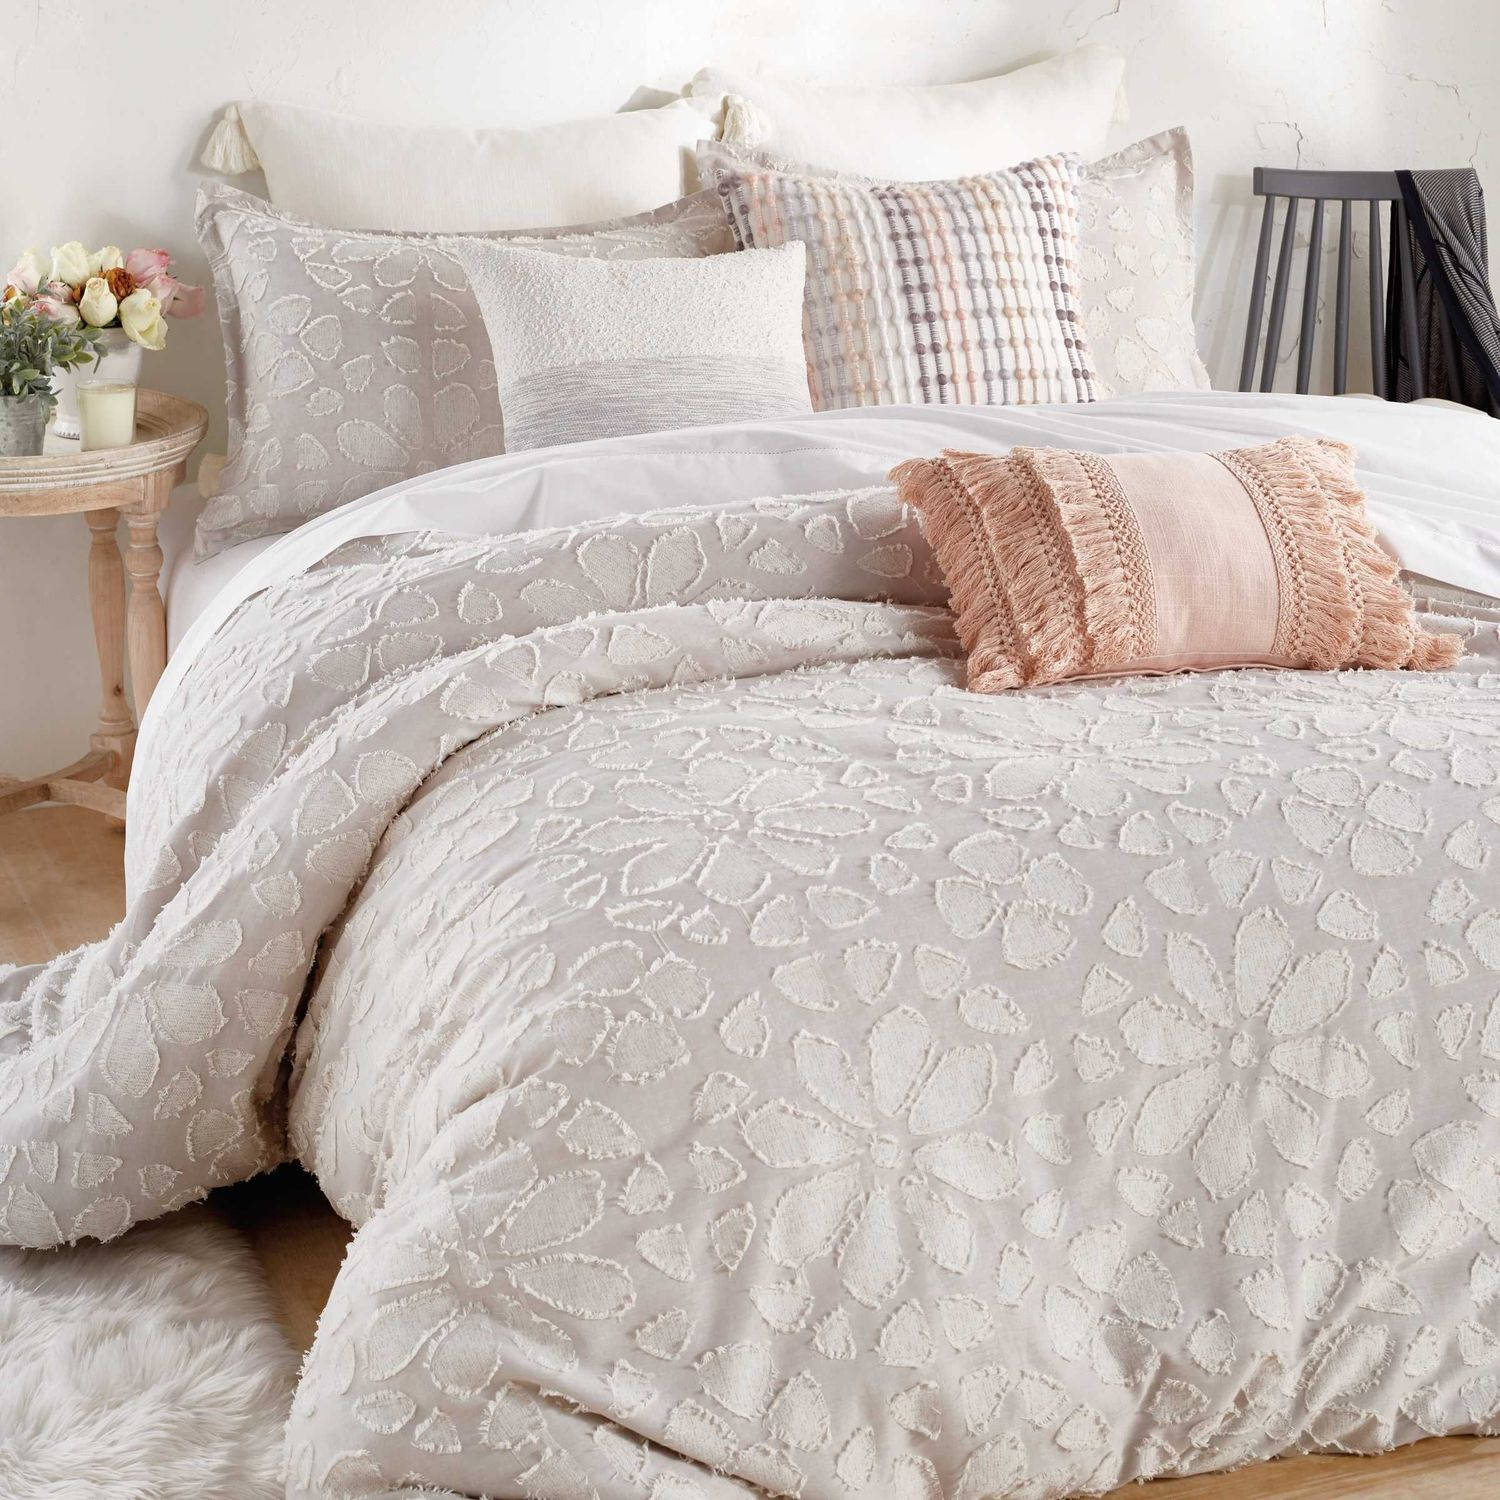 Peri Home Clipped Floral Textured Bedding